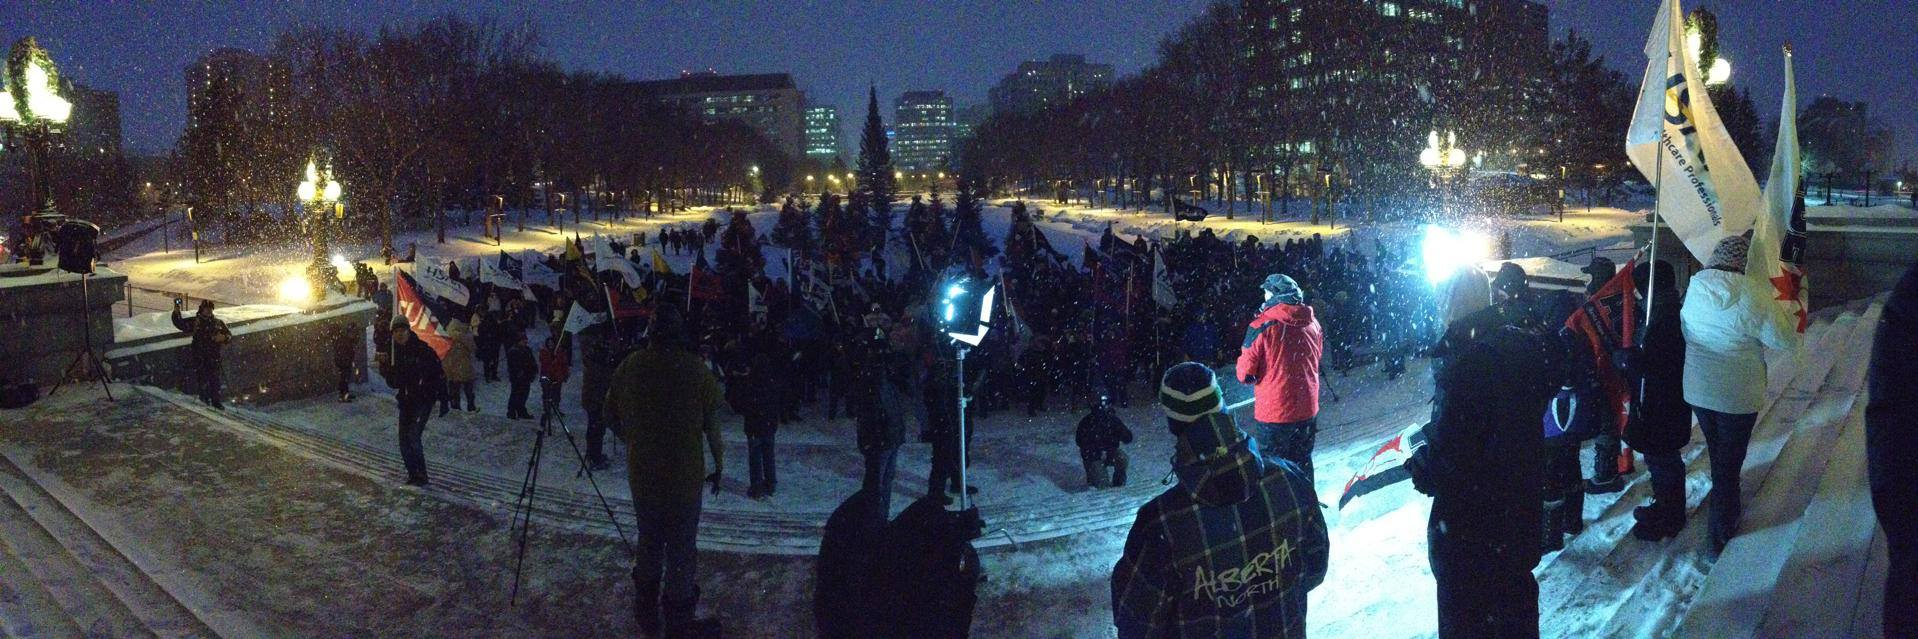 More than 500 Albertans gathered on the steps of the Alberta Legislature to oppose Bills 45 and 46 on Monday, December 2, 2013.